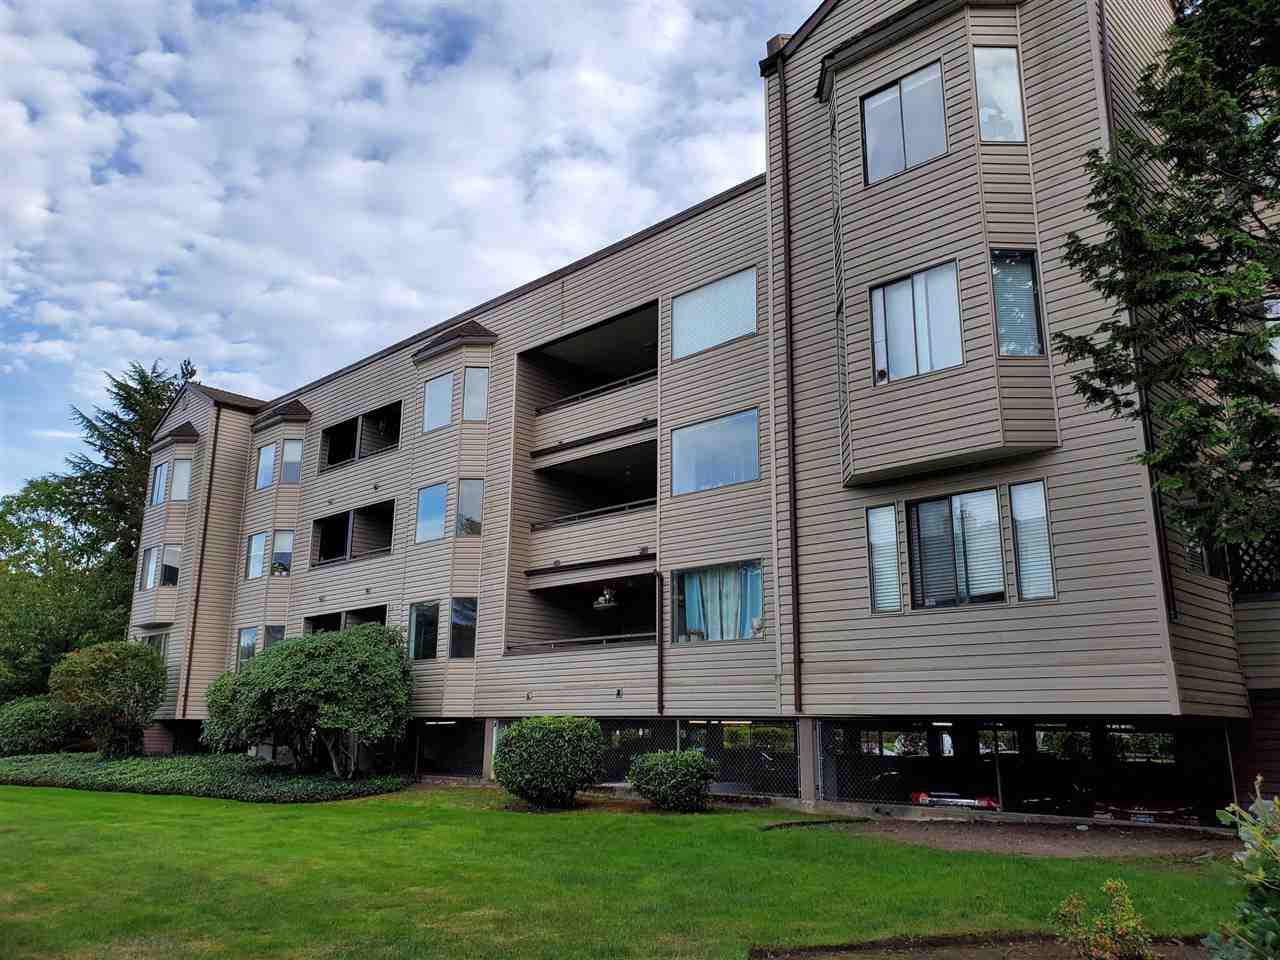 """Main Photo: 208 5294 204 Street in Langley: Langley City Condo for sale in """"Waters Edge"""" : MLS®# R2502382"""